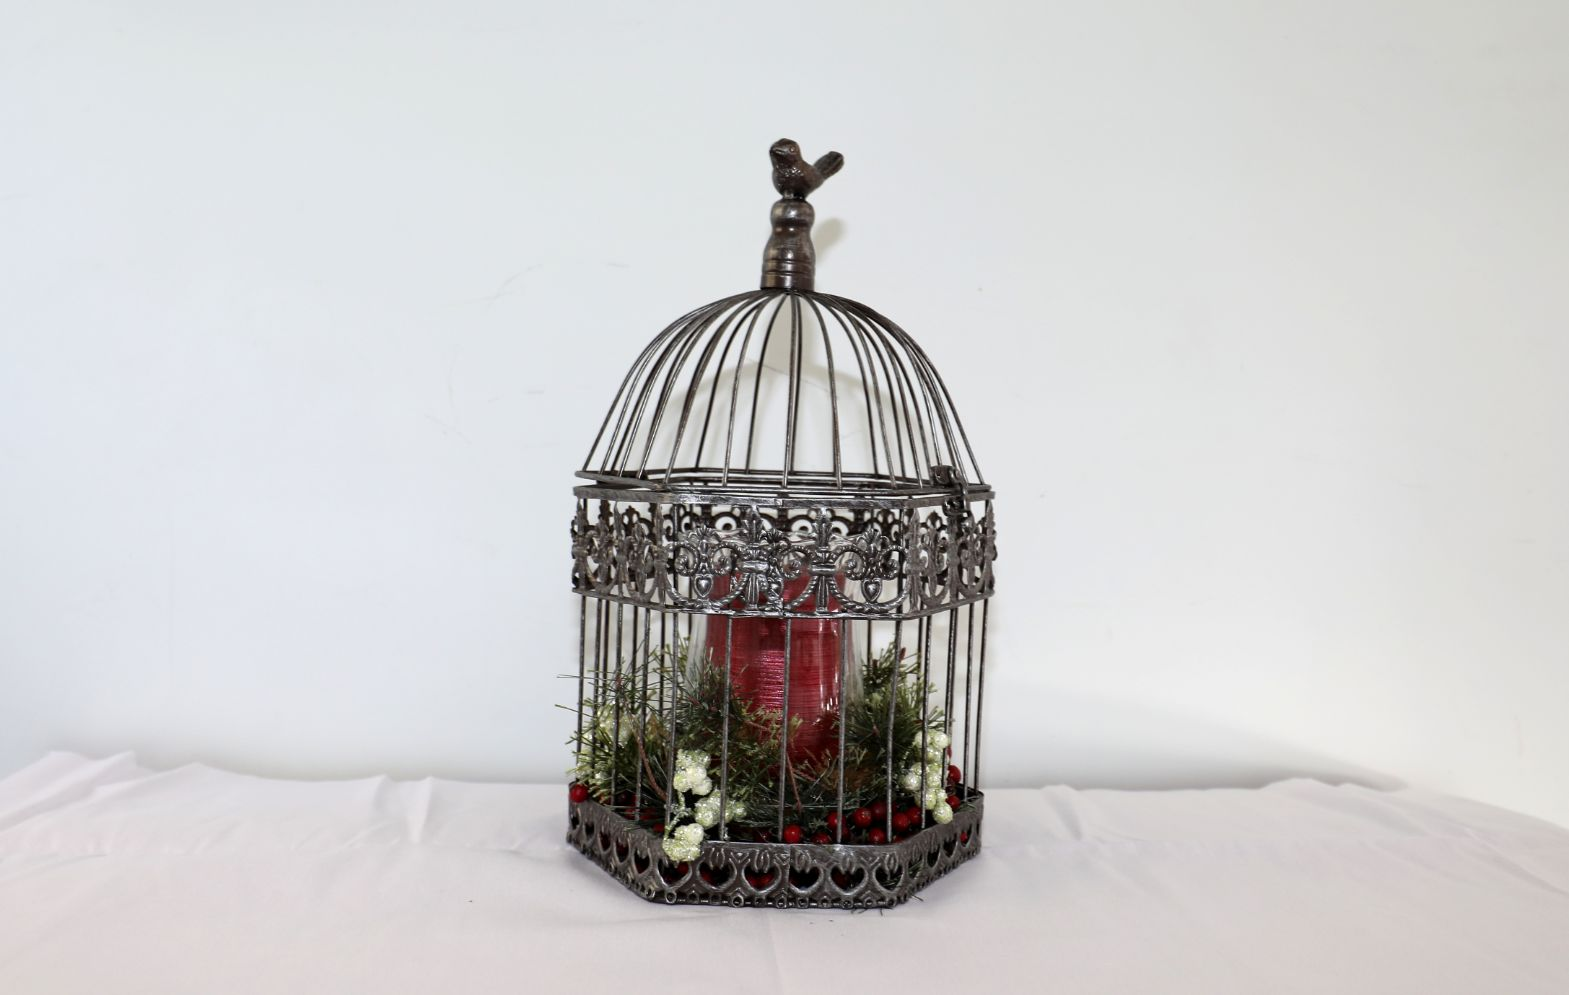 Decorative Birdcage with Candle and Greens